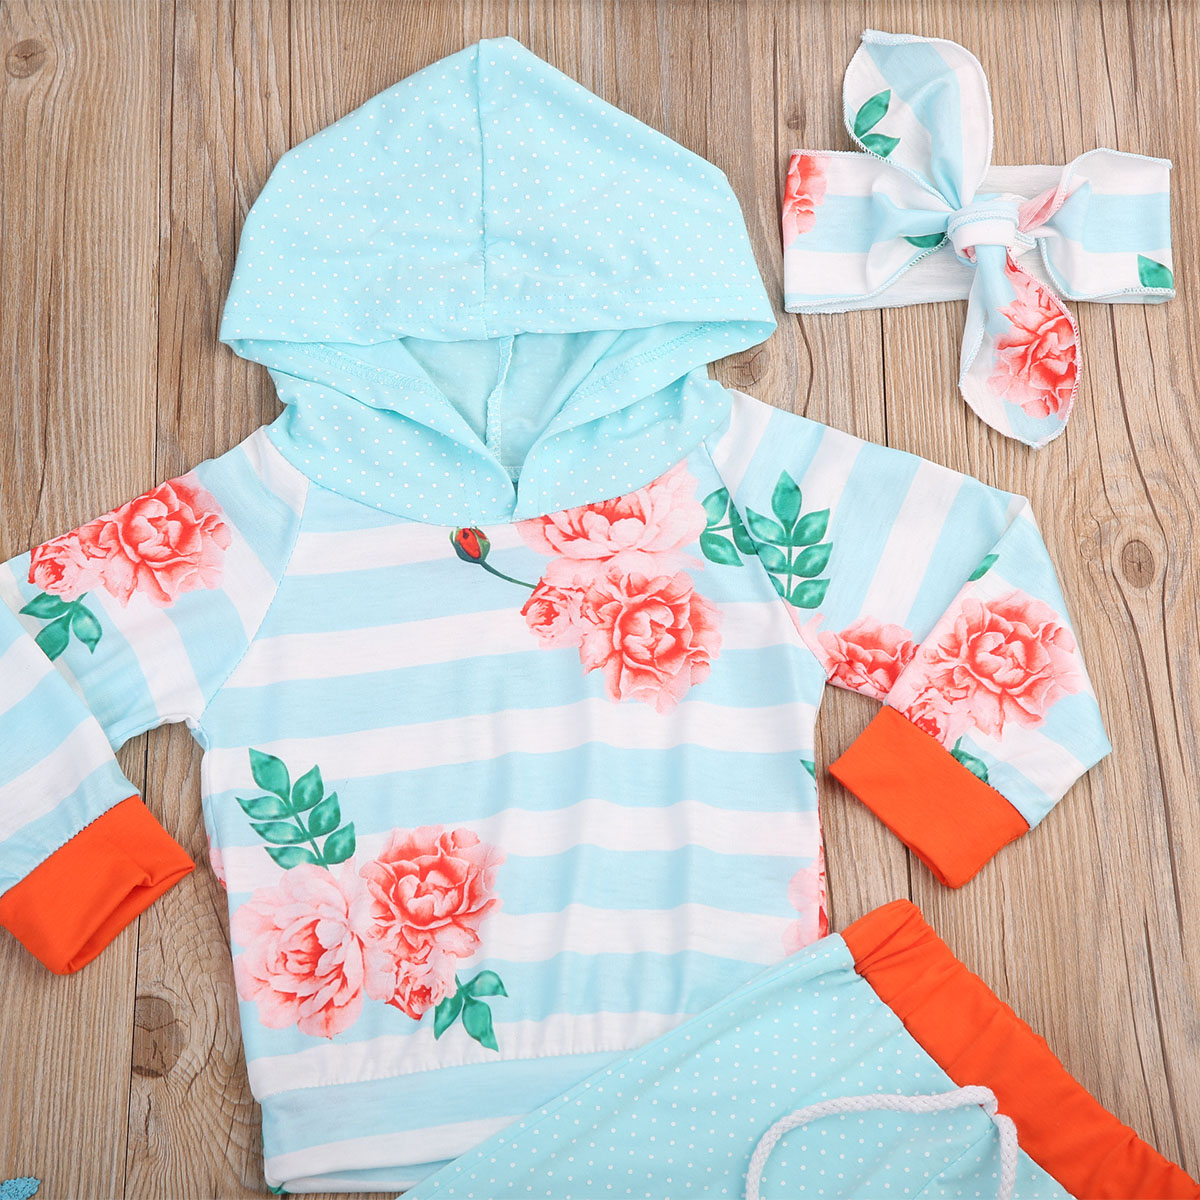 3Pcs Toddle Kids Baby Girls Clothes Set Floral Striped Polka Dot Long Sleeve Tops Hooded Long Pants Headband Outfits Clothes